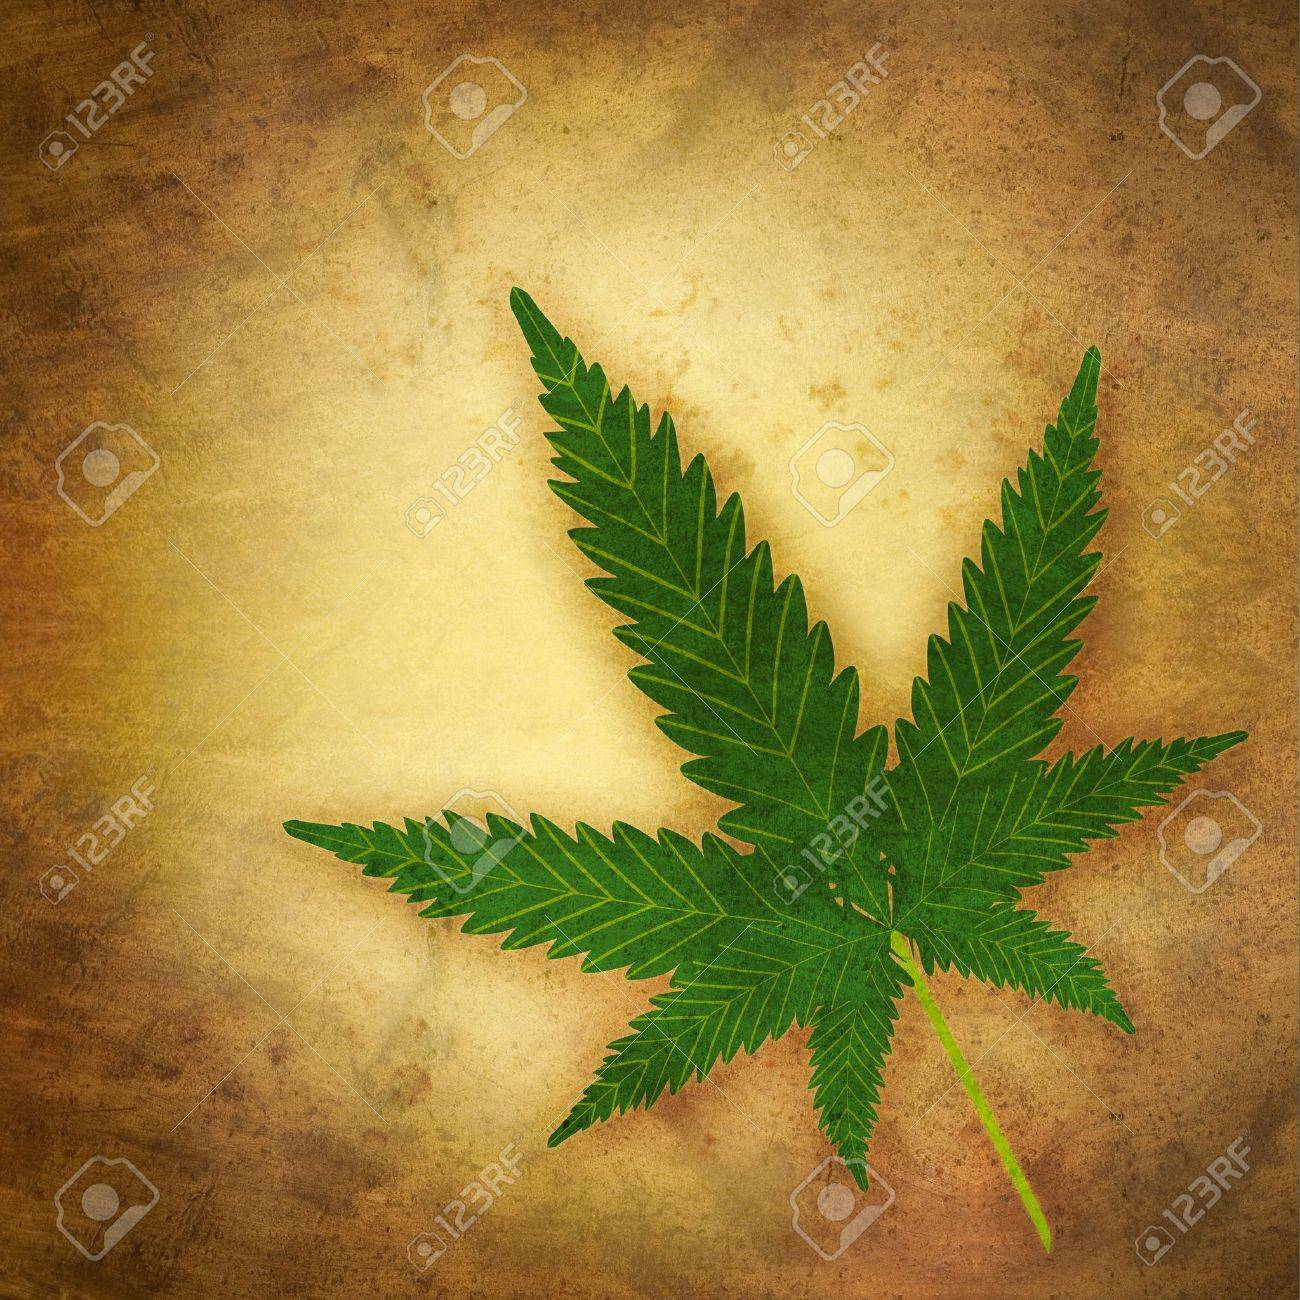 cannabis leaf in grunge style Stock Photo - 12806920